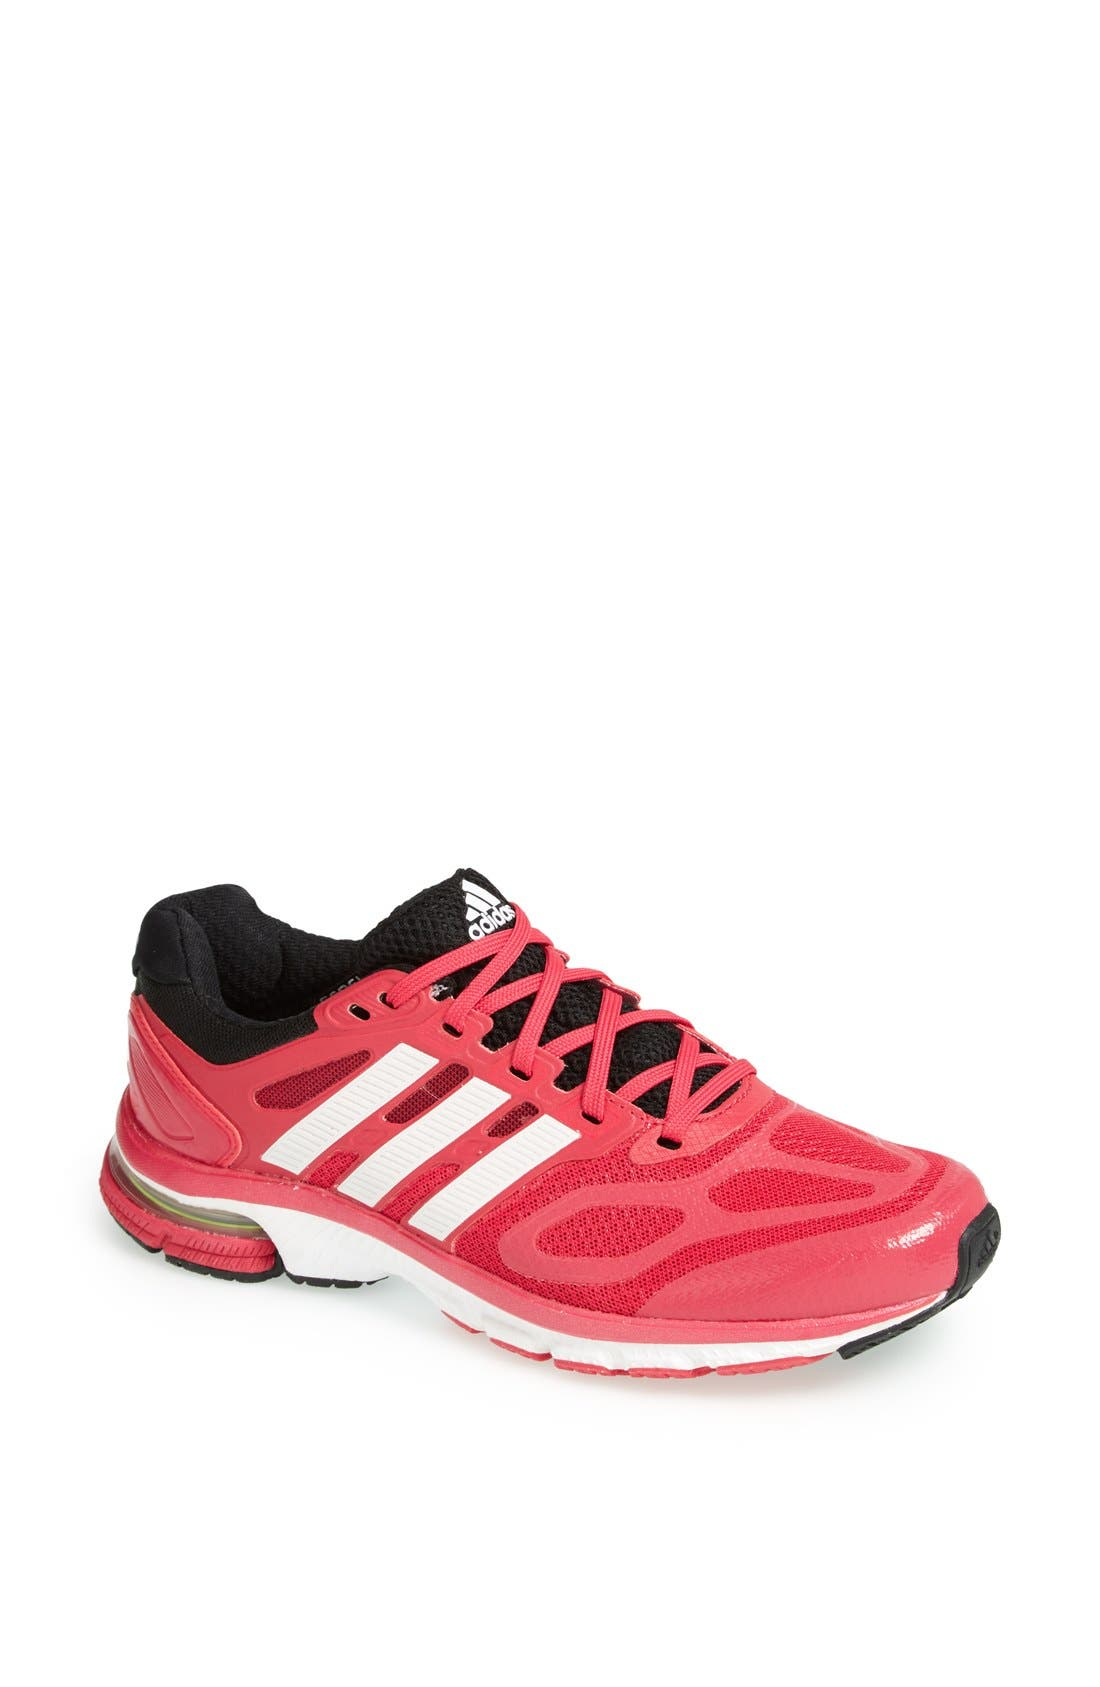 Alternate Image 1 Selected - adidas 'Supernova Sequence 6' Running Shoe (Women)